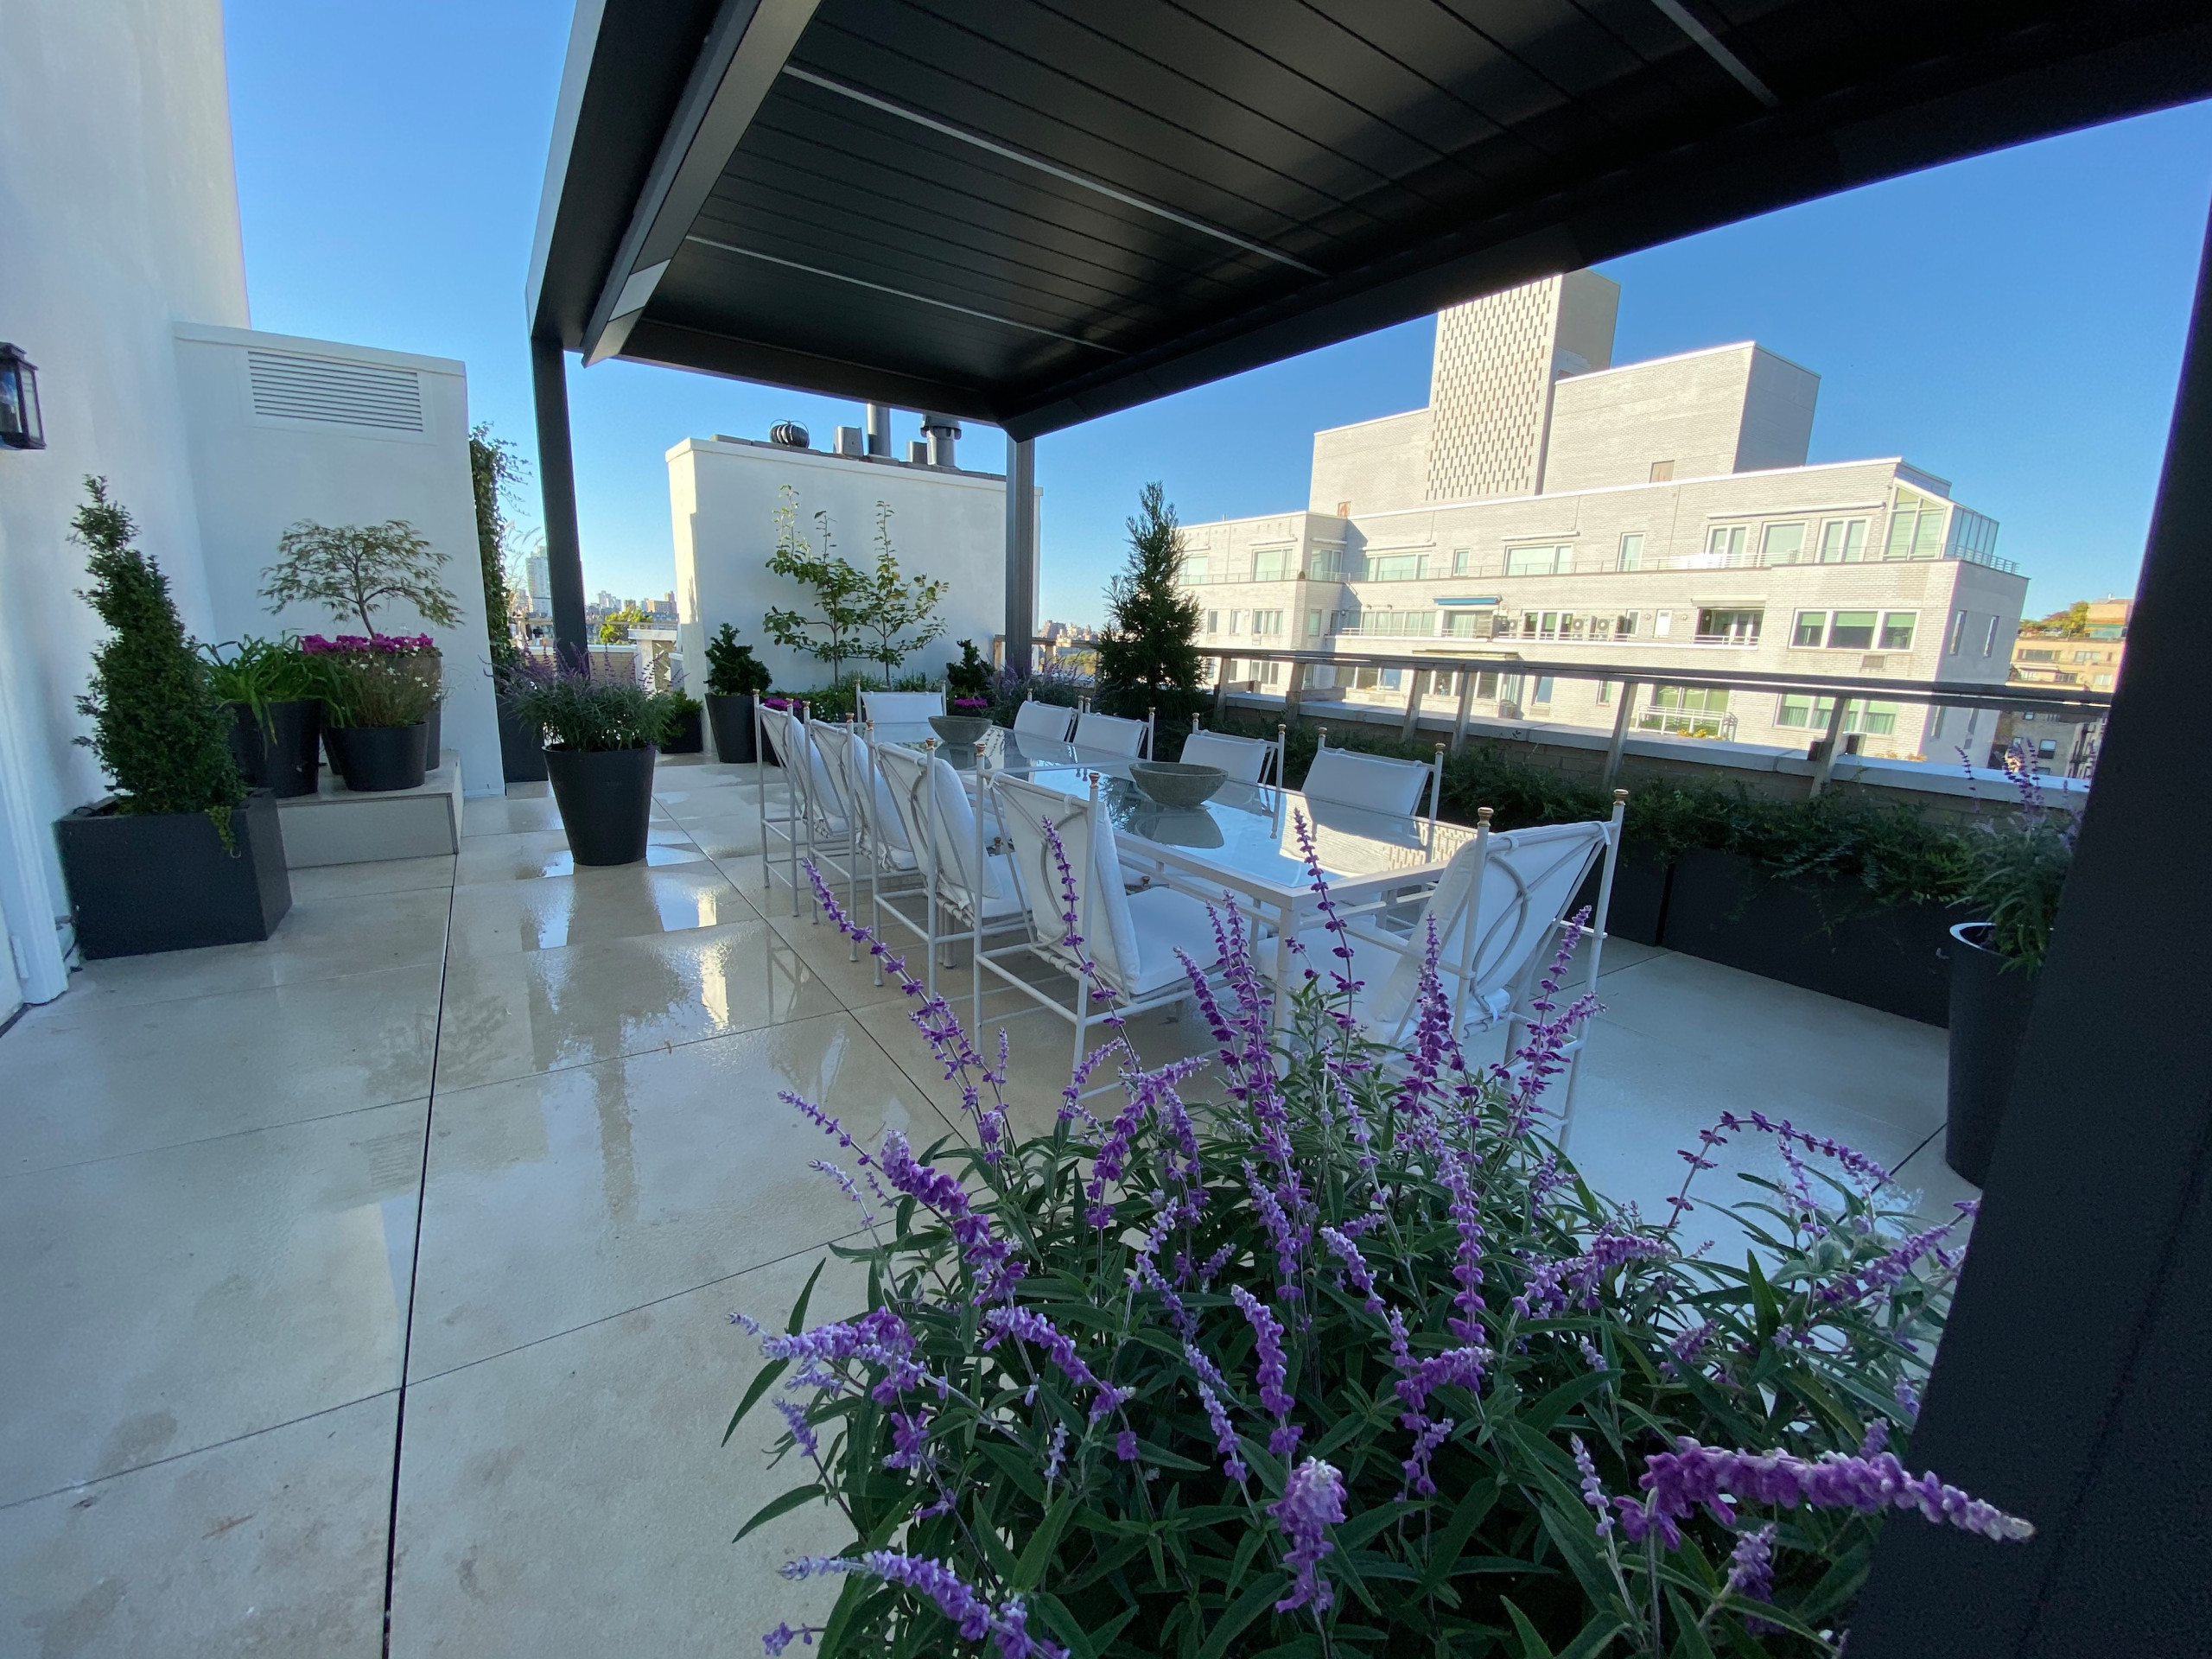 Prewar classic penthouse terrace, with a modern design intended to refresh the outdoor living space and make it more functional for the present day while providing an attractive aesthetic.